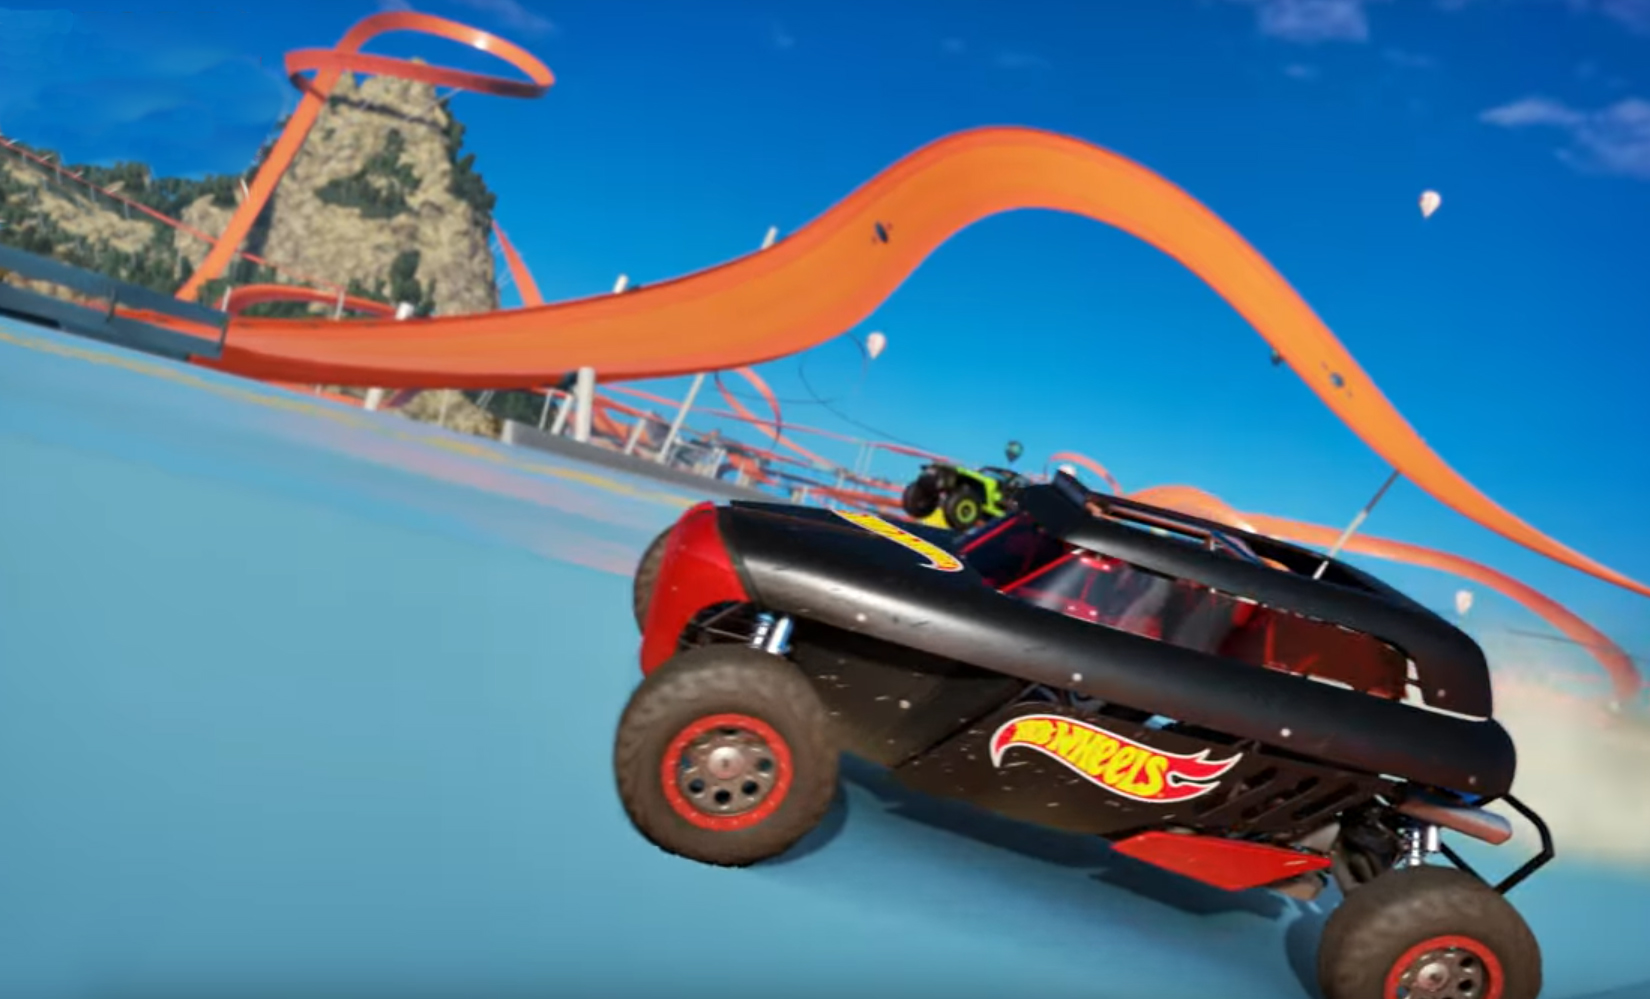 Forza Horizon 3 is getting loop-de-loops and a giant T-rex in new